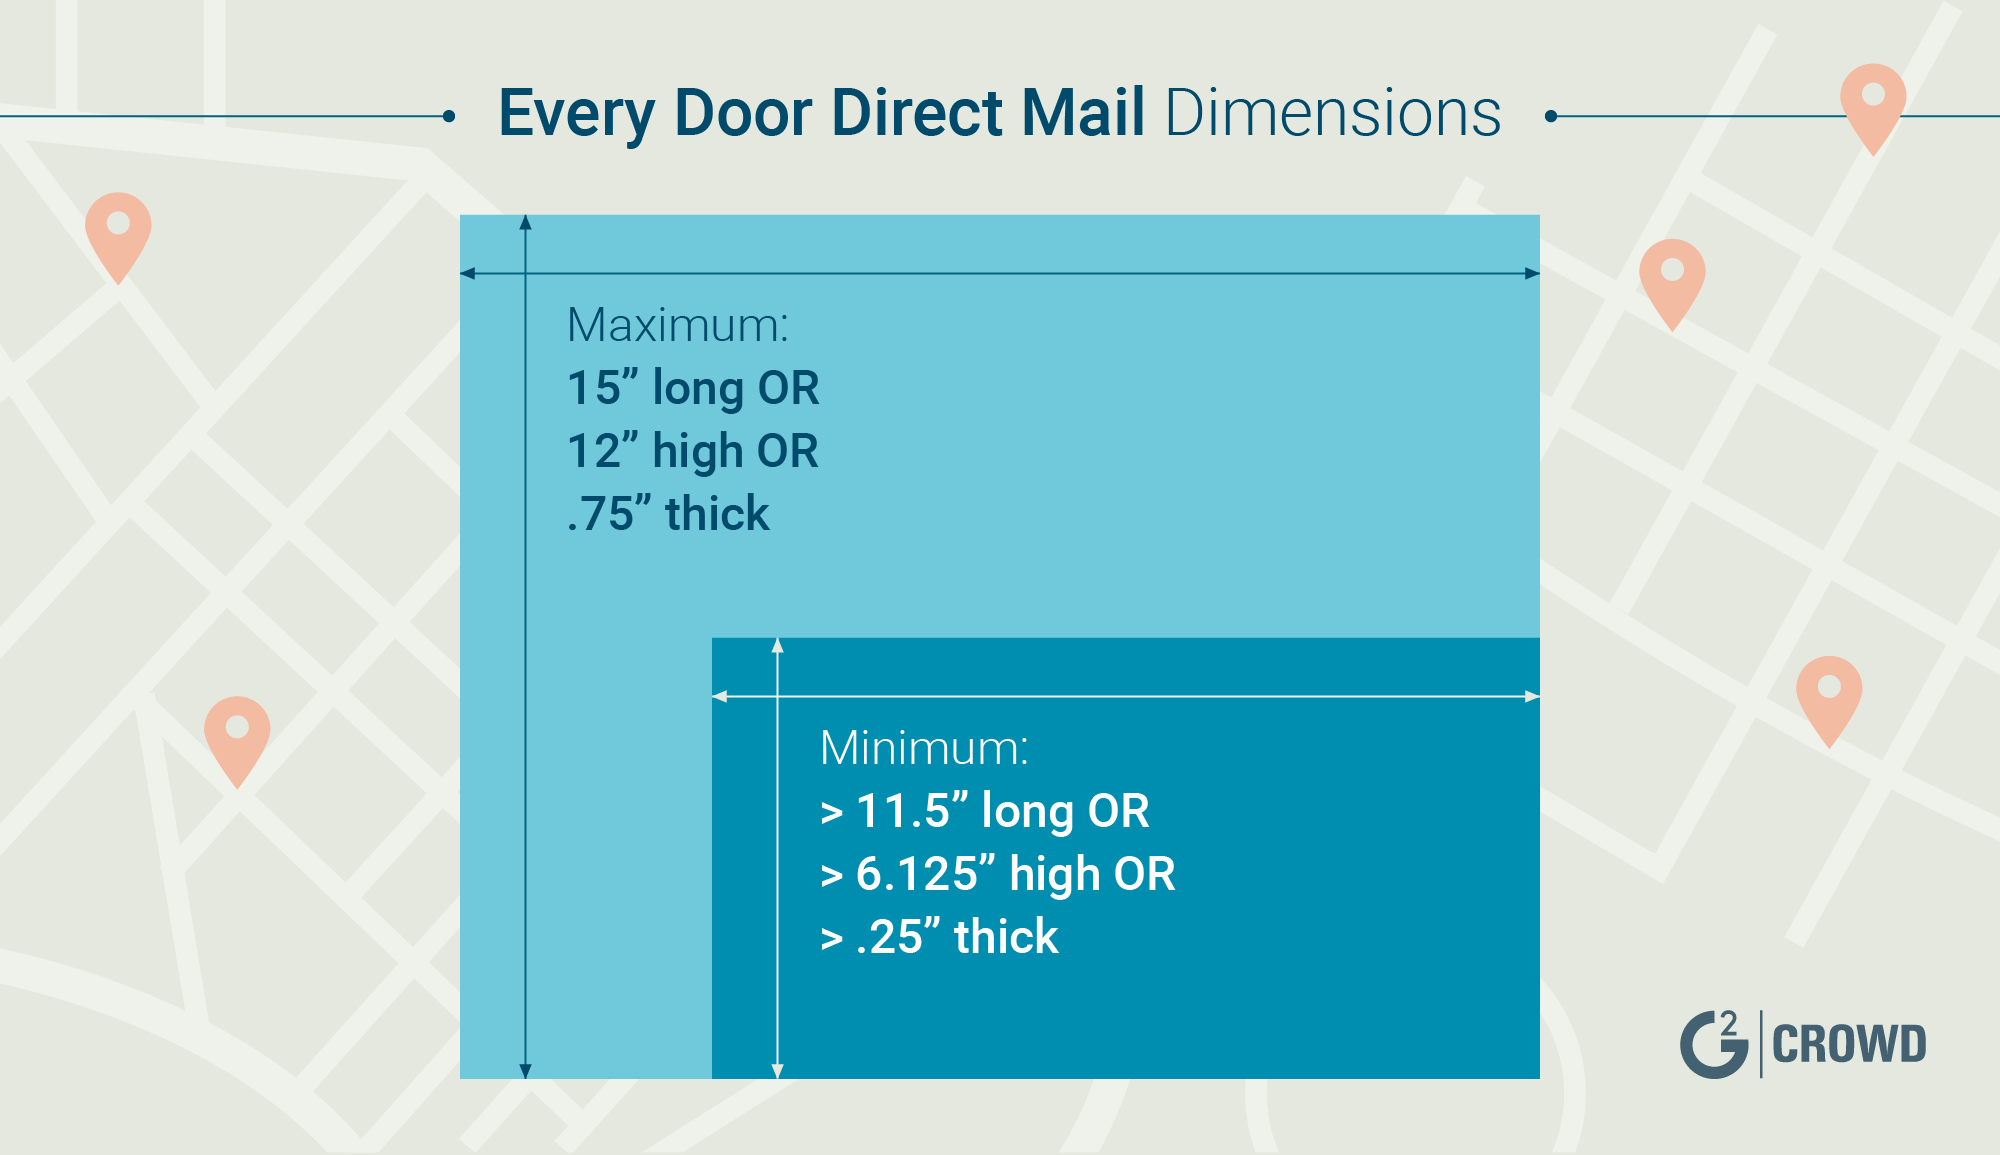 Eddm Sizes Dimensions For Sending Every Door Direct Mail Through Usps Direct Mail Postcards Postcard Template Direct Mail